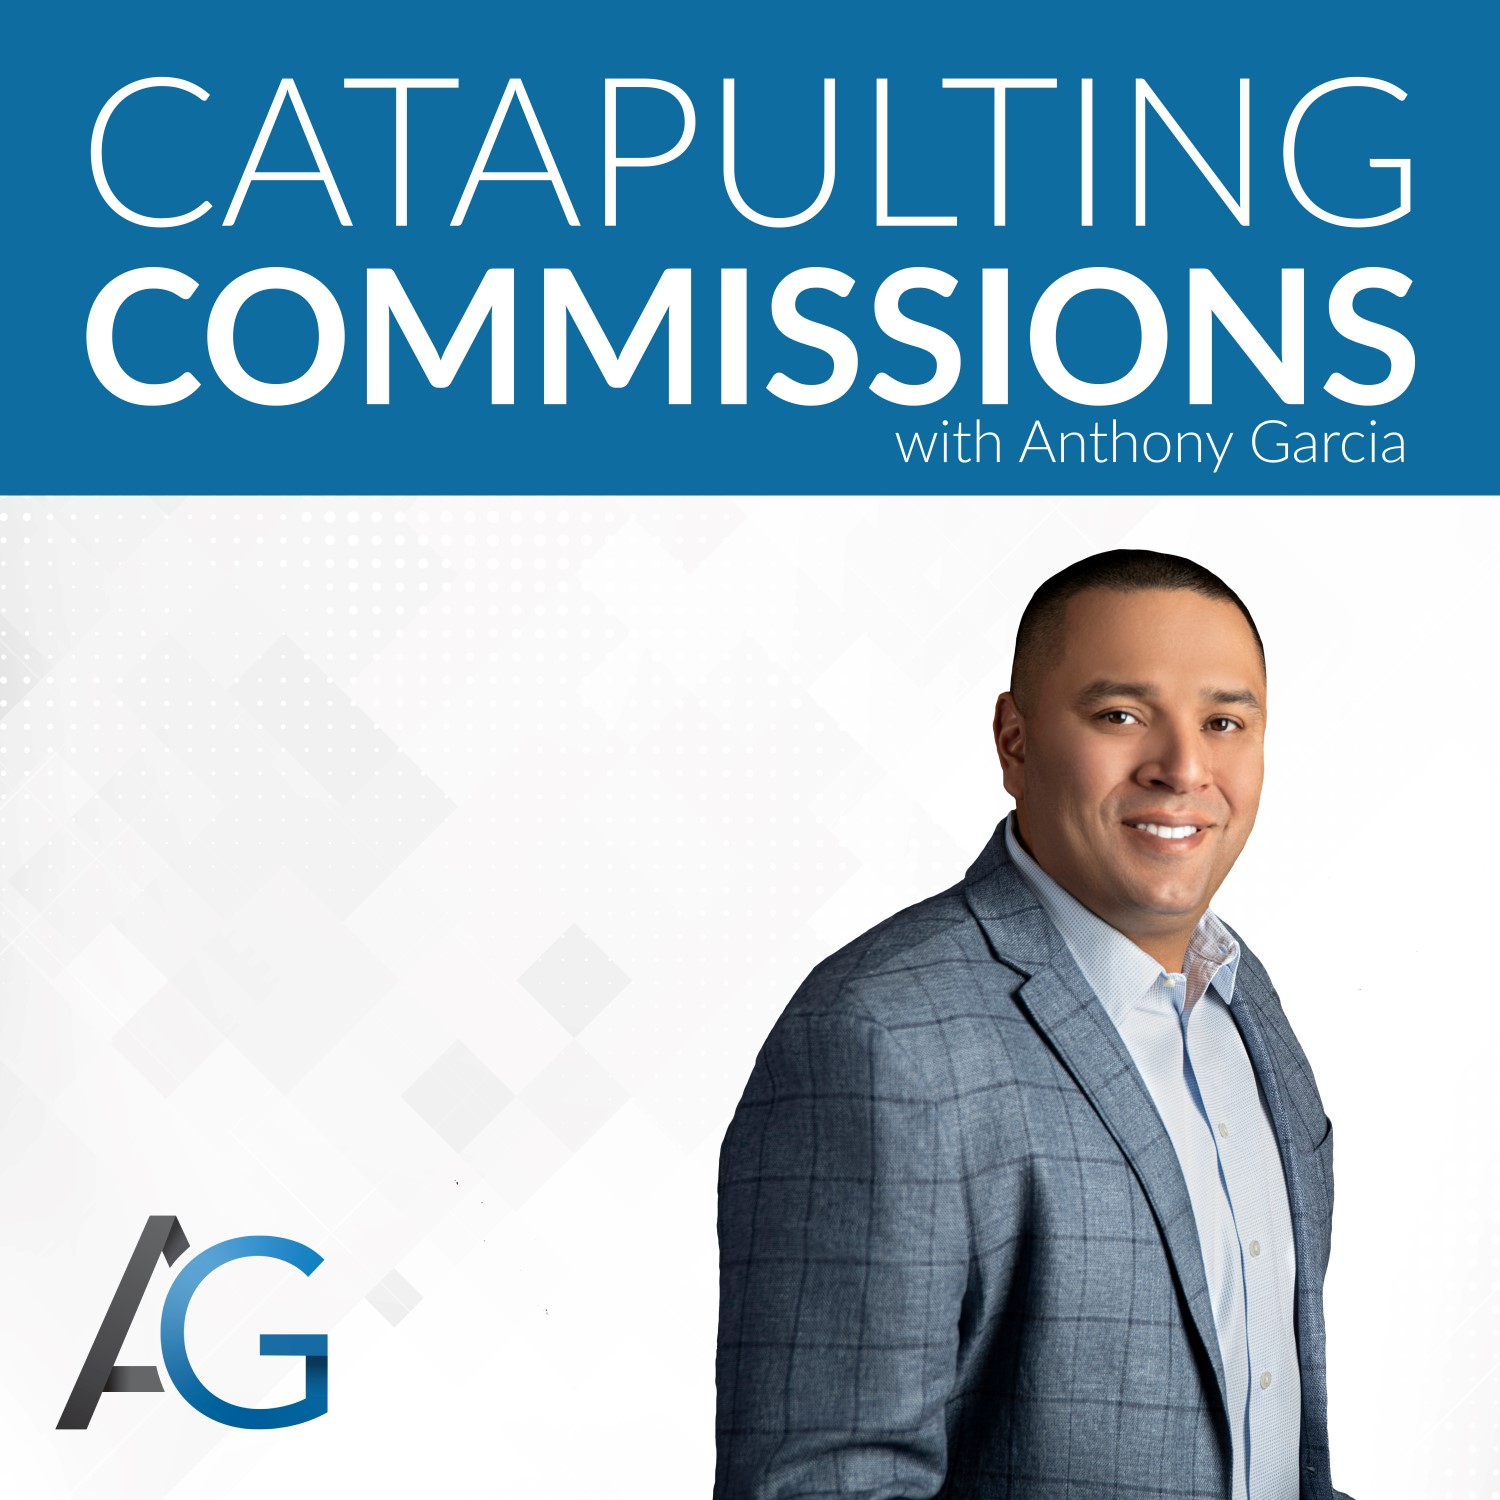 Catapulting Commissions with Anthony Garcia show art